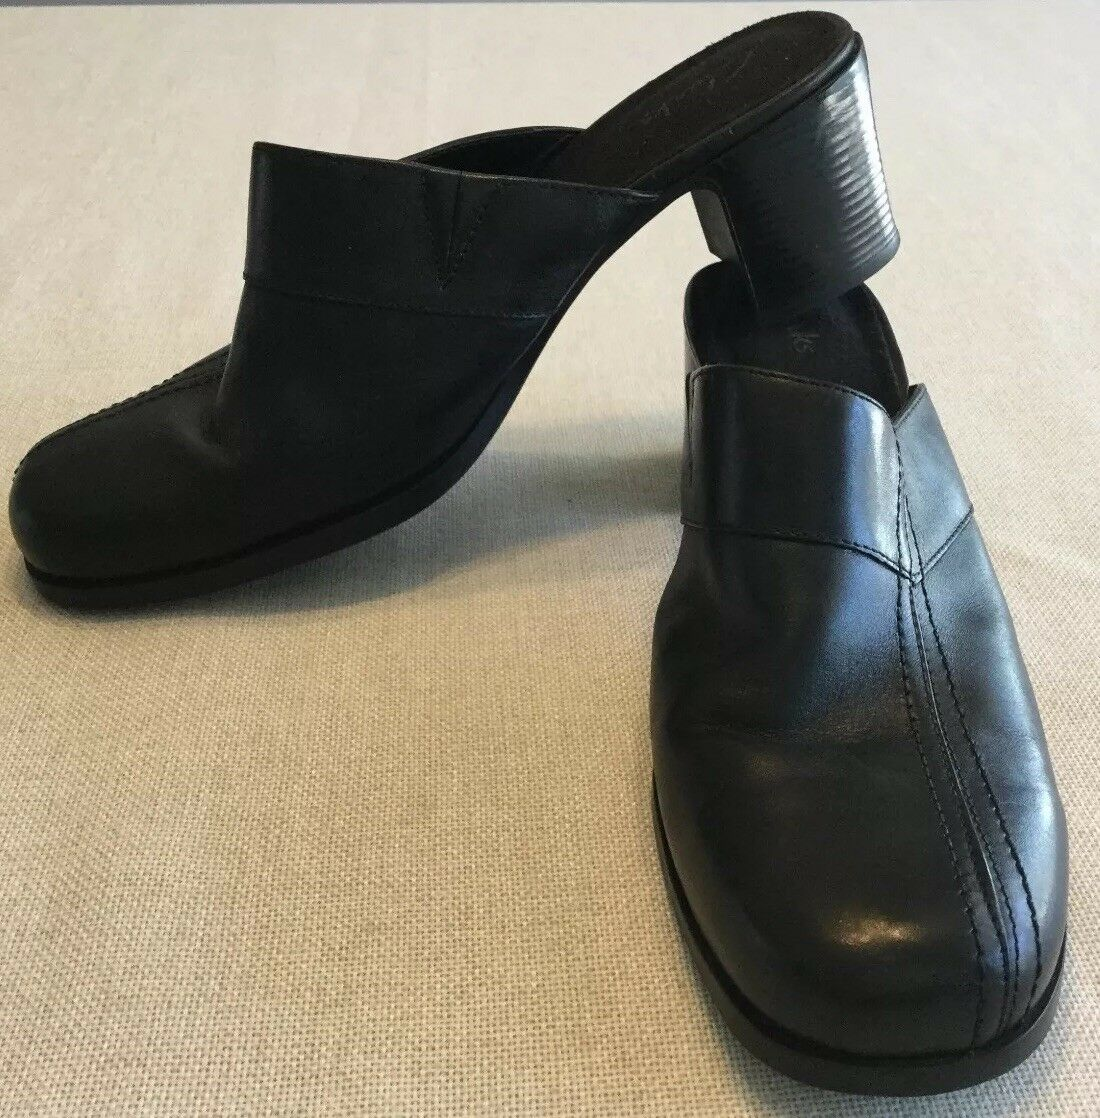 CLARKS Women's Size 9 1 2 M Black Leather Slip-On Clog Mules